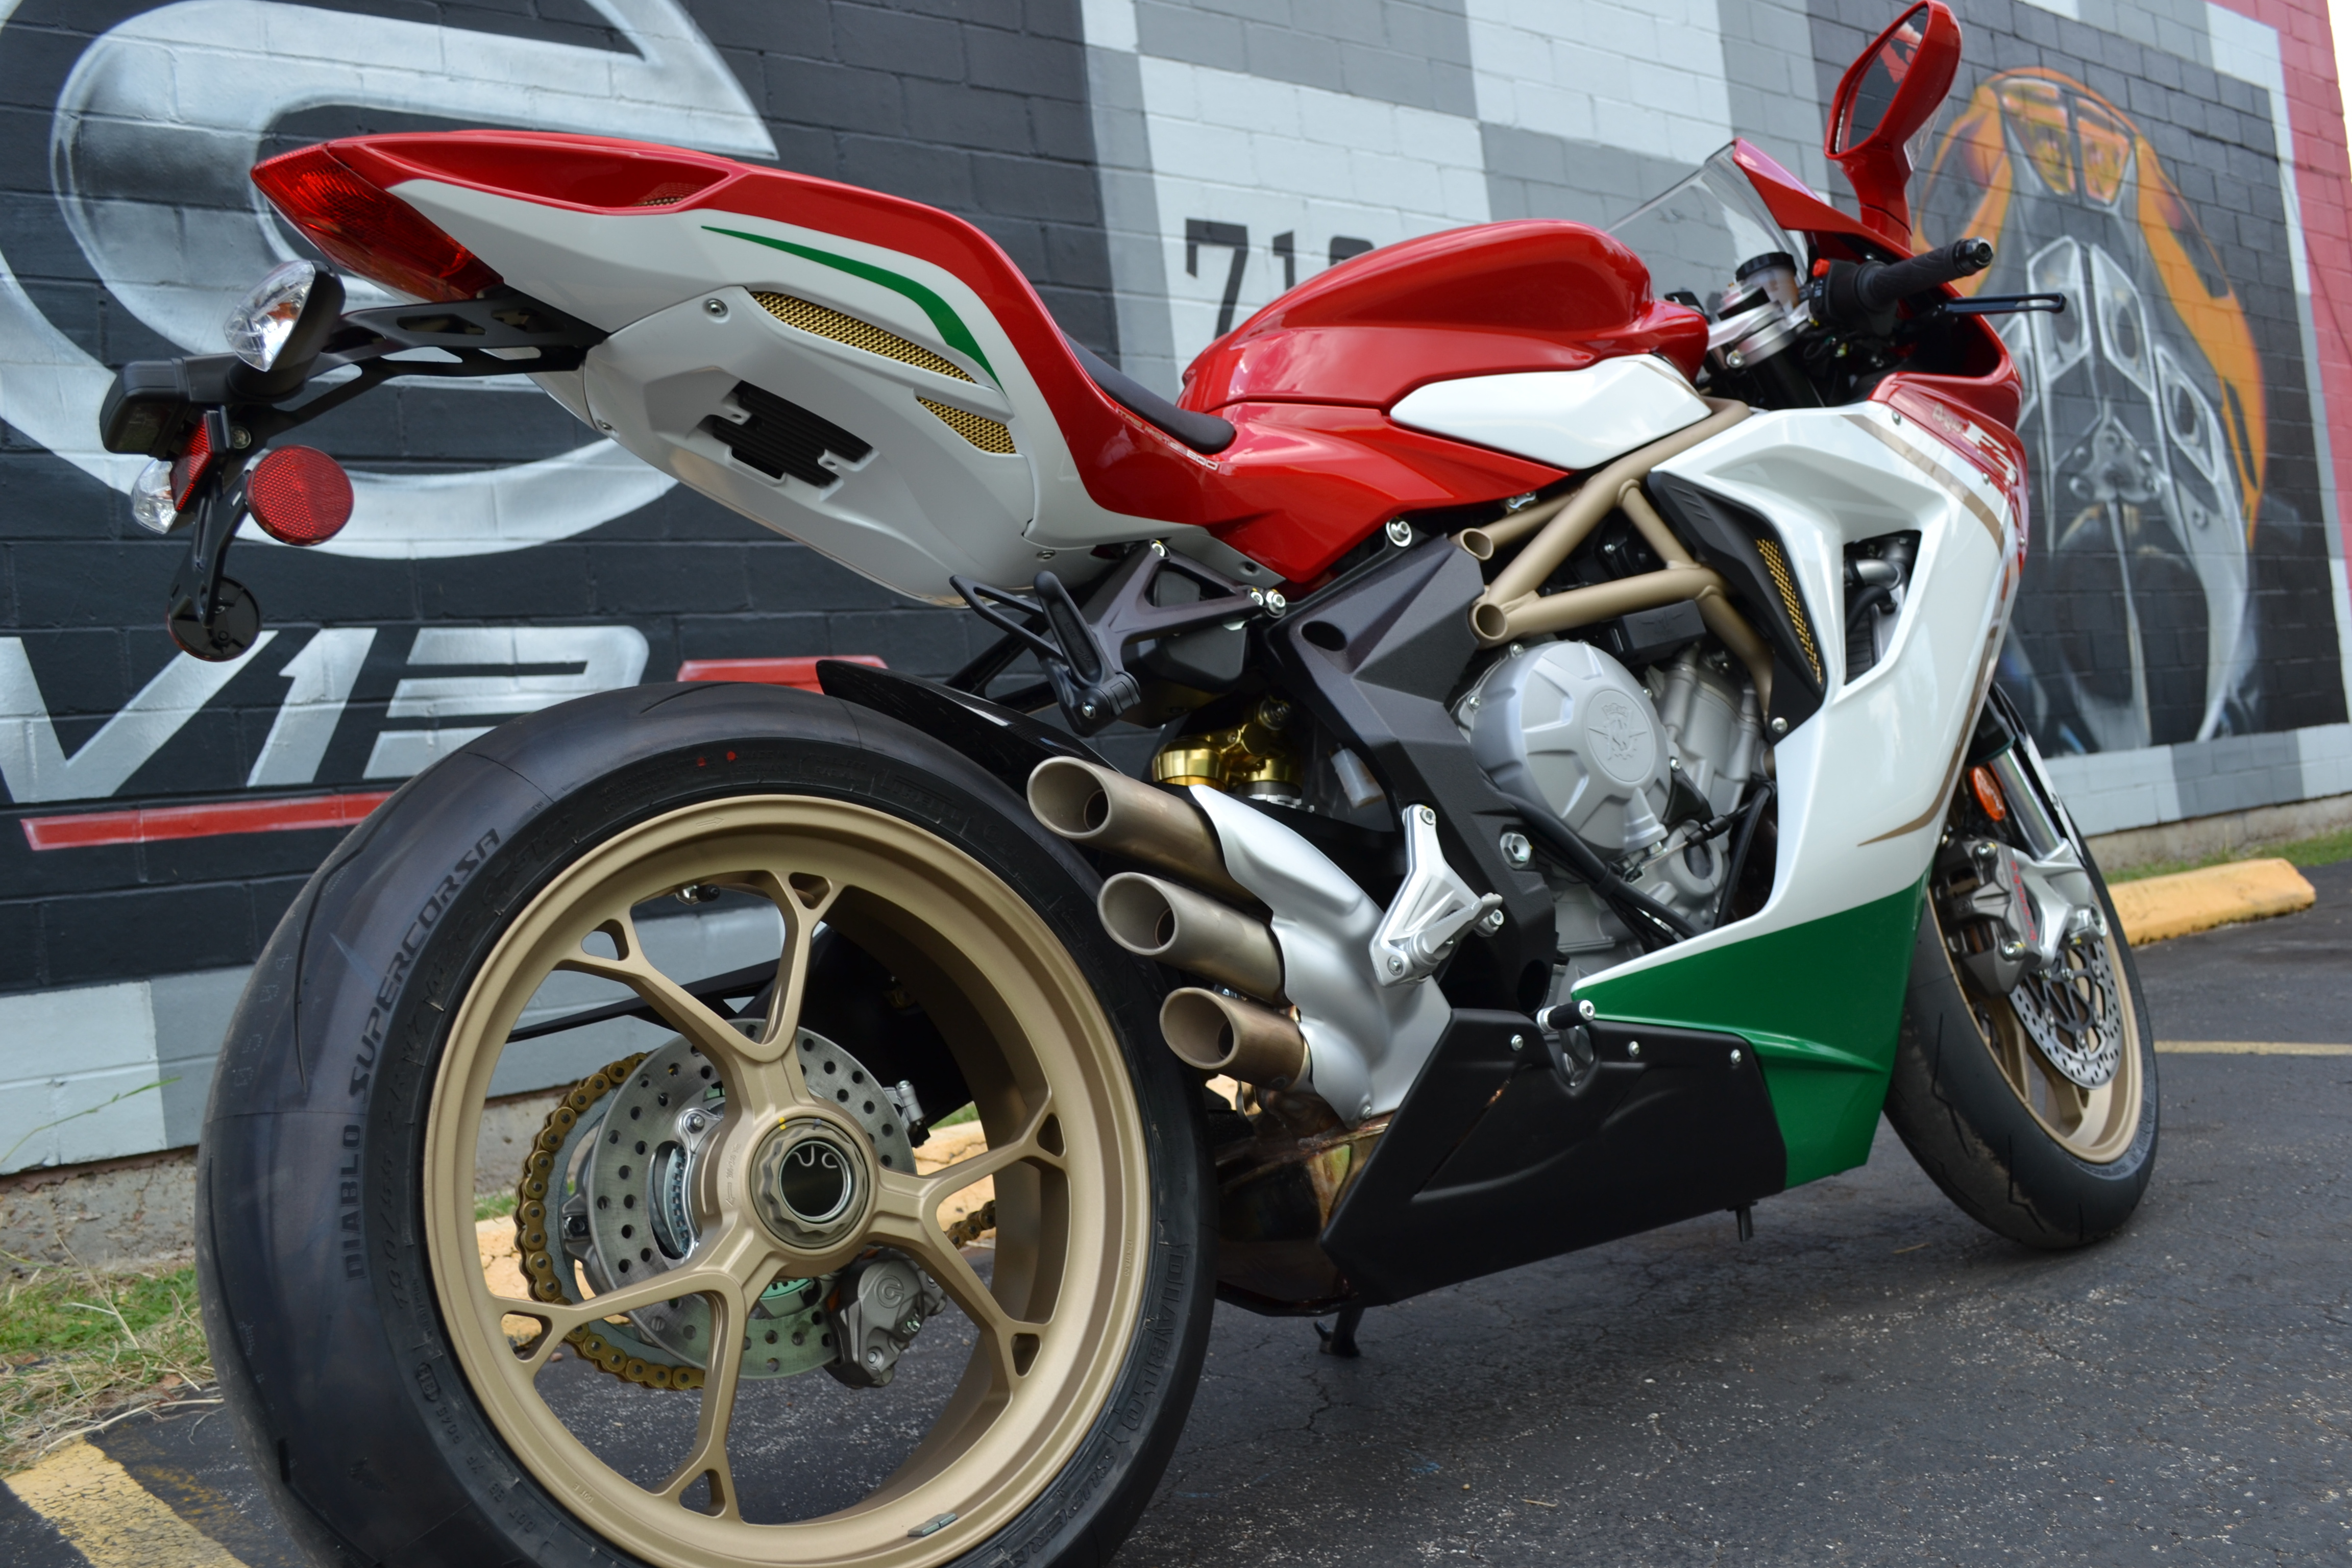 2015 mv agusta f3 800 ago 21 sales price buy aircrafts. Black Bedroom Furniture Sets. Home Design Ideas